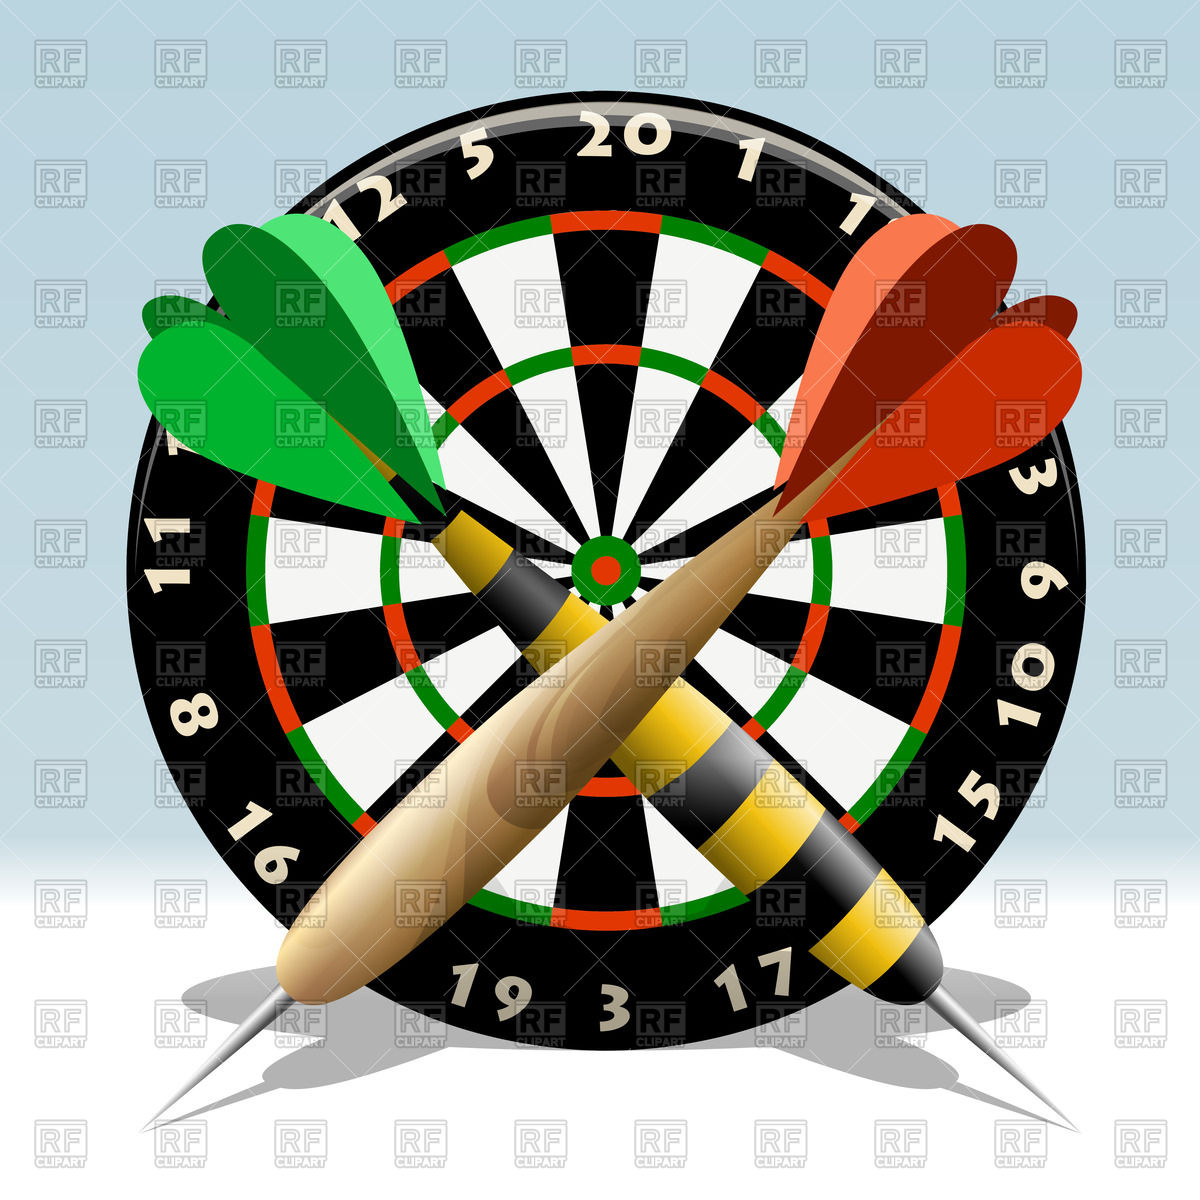 Darts clipart #3, Download drawings